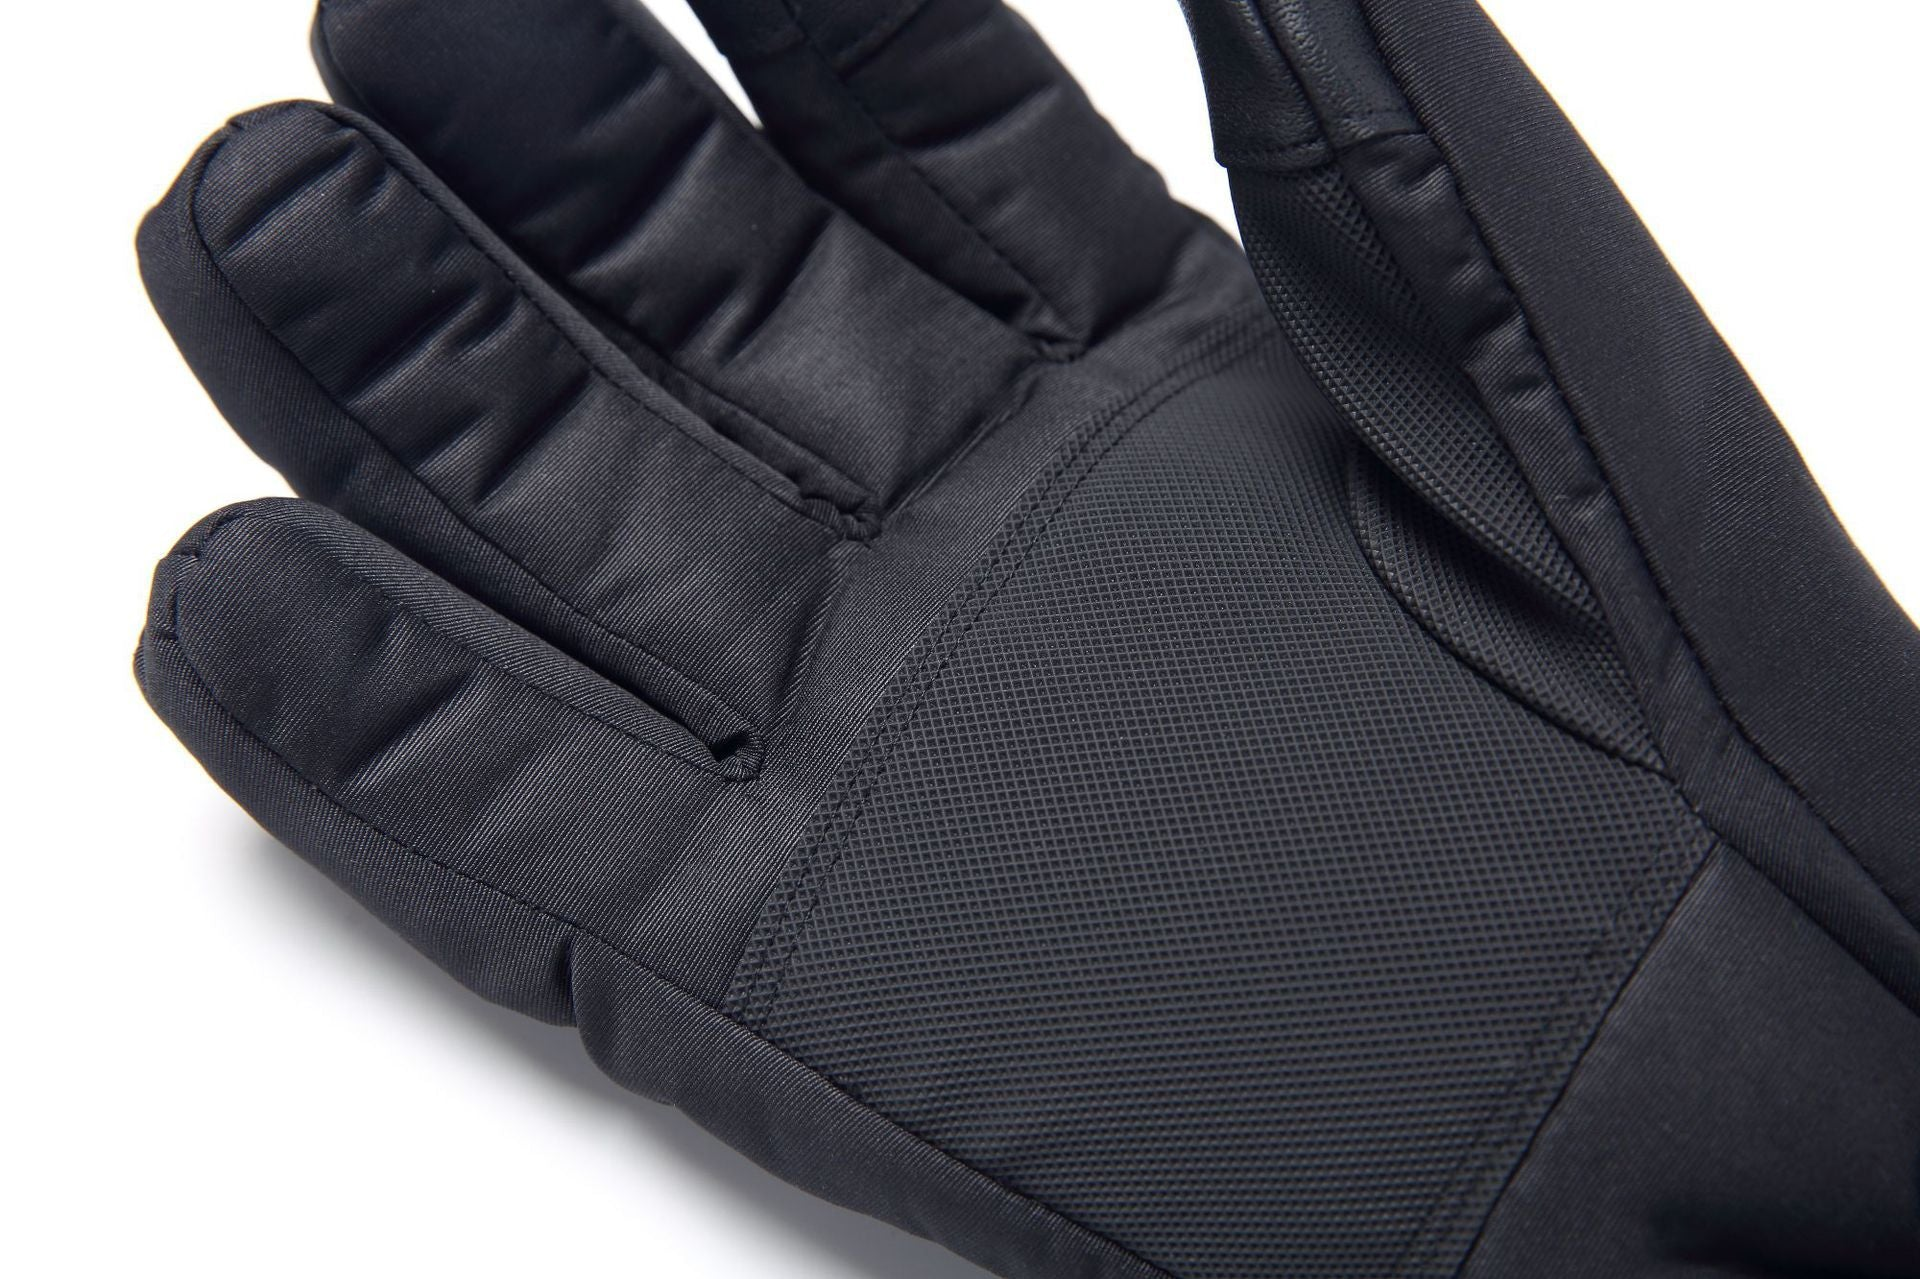 Electric Heated Gloves (Up to 50% OFF & Free Shipping)